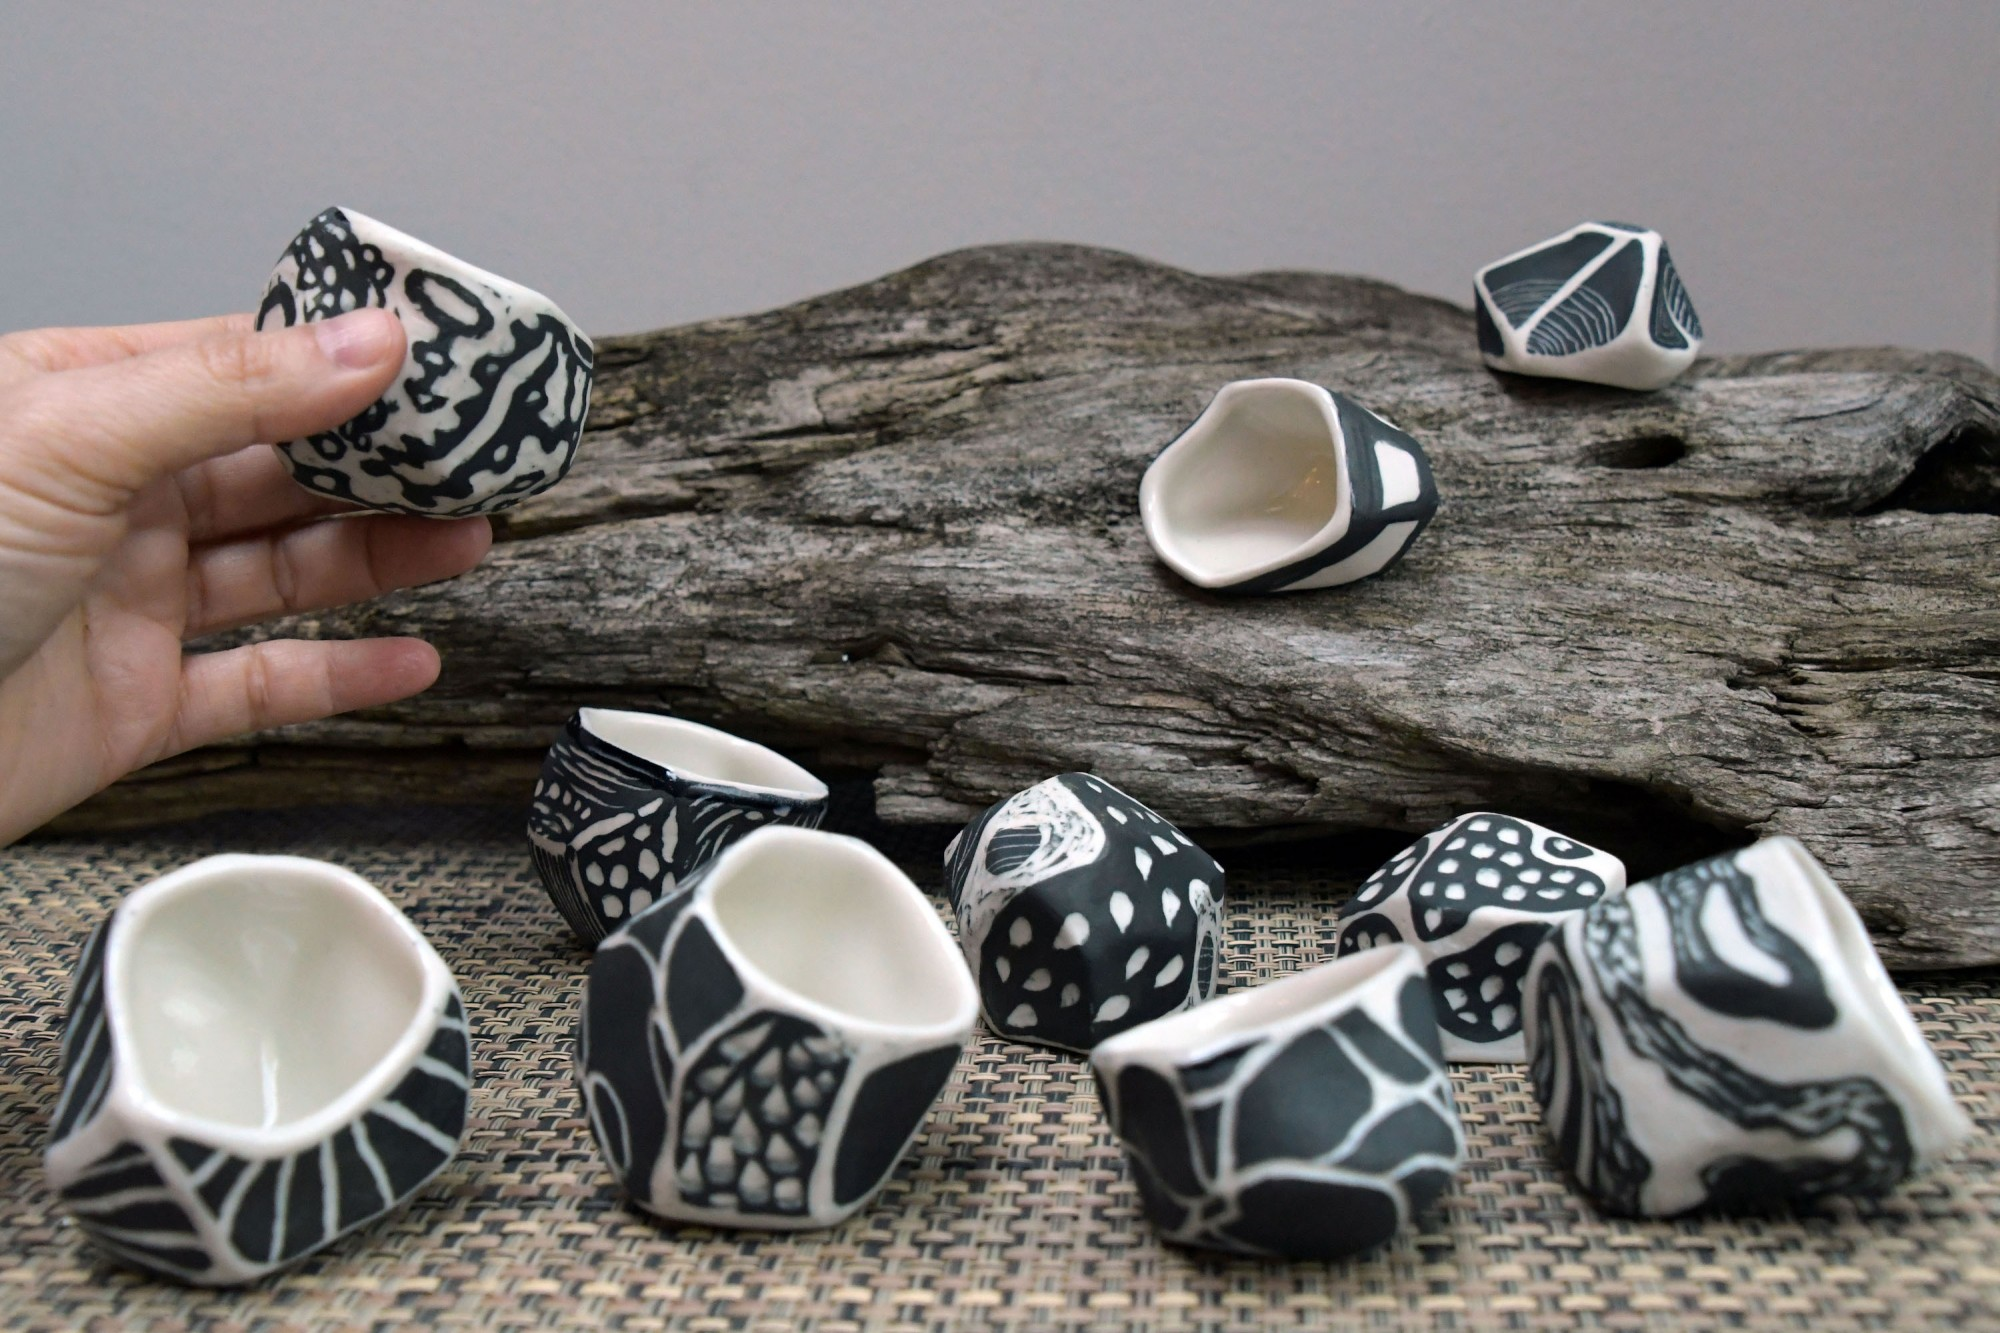 Collaboration with artist Wendy Letven: Tea Cups